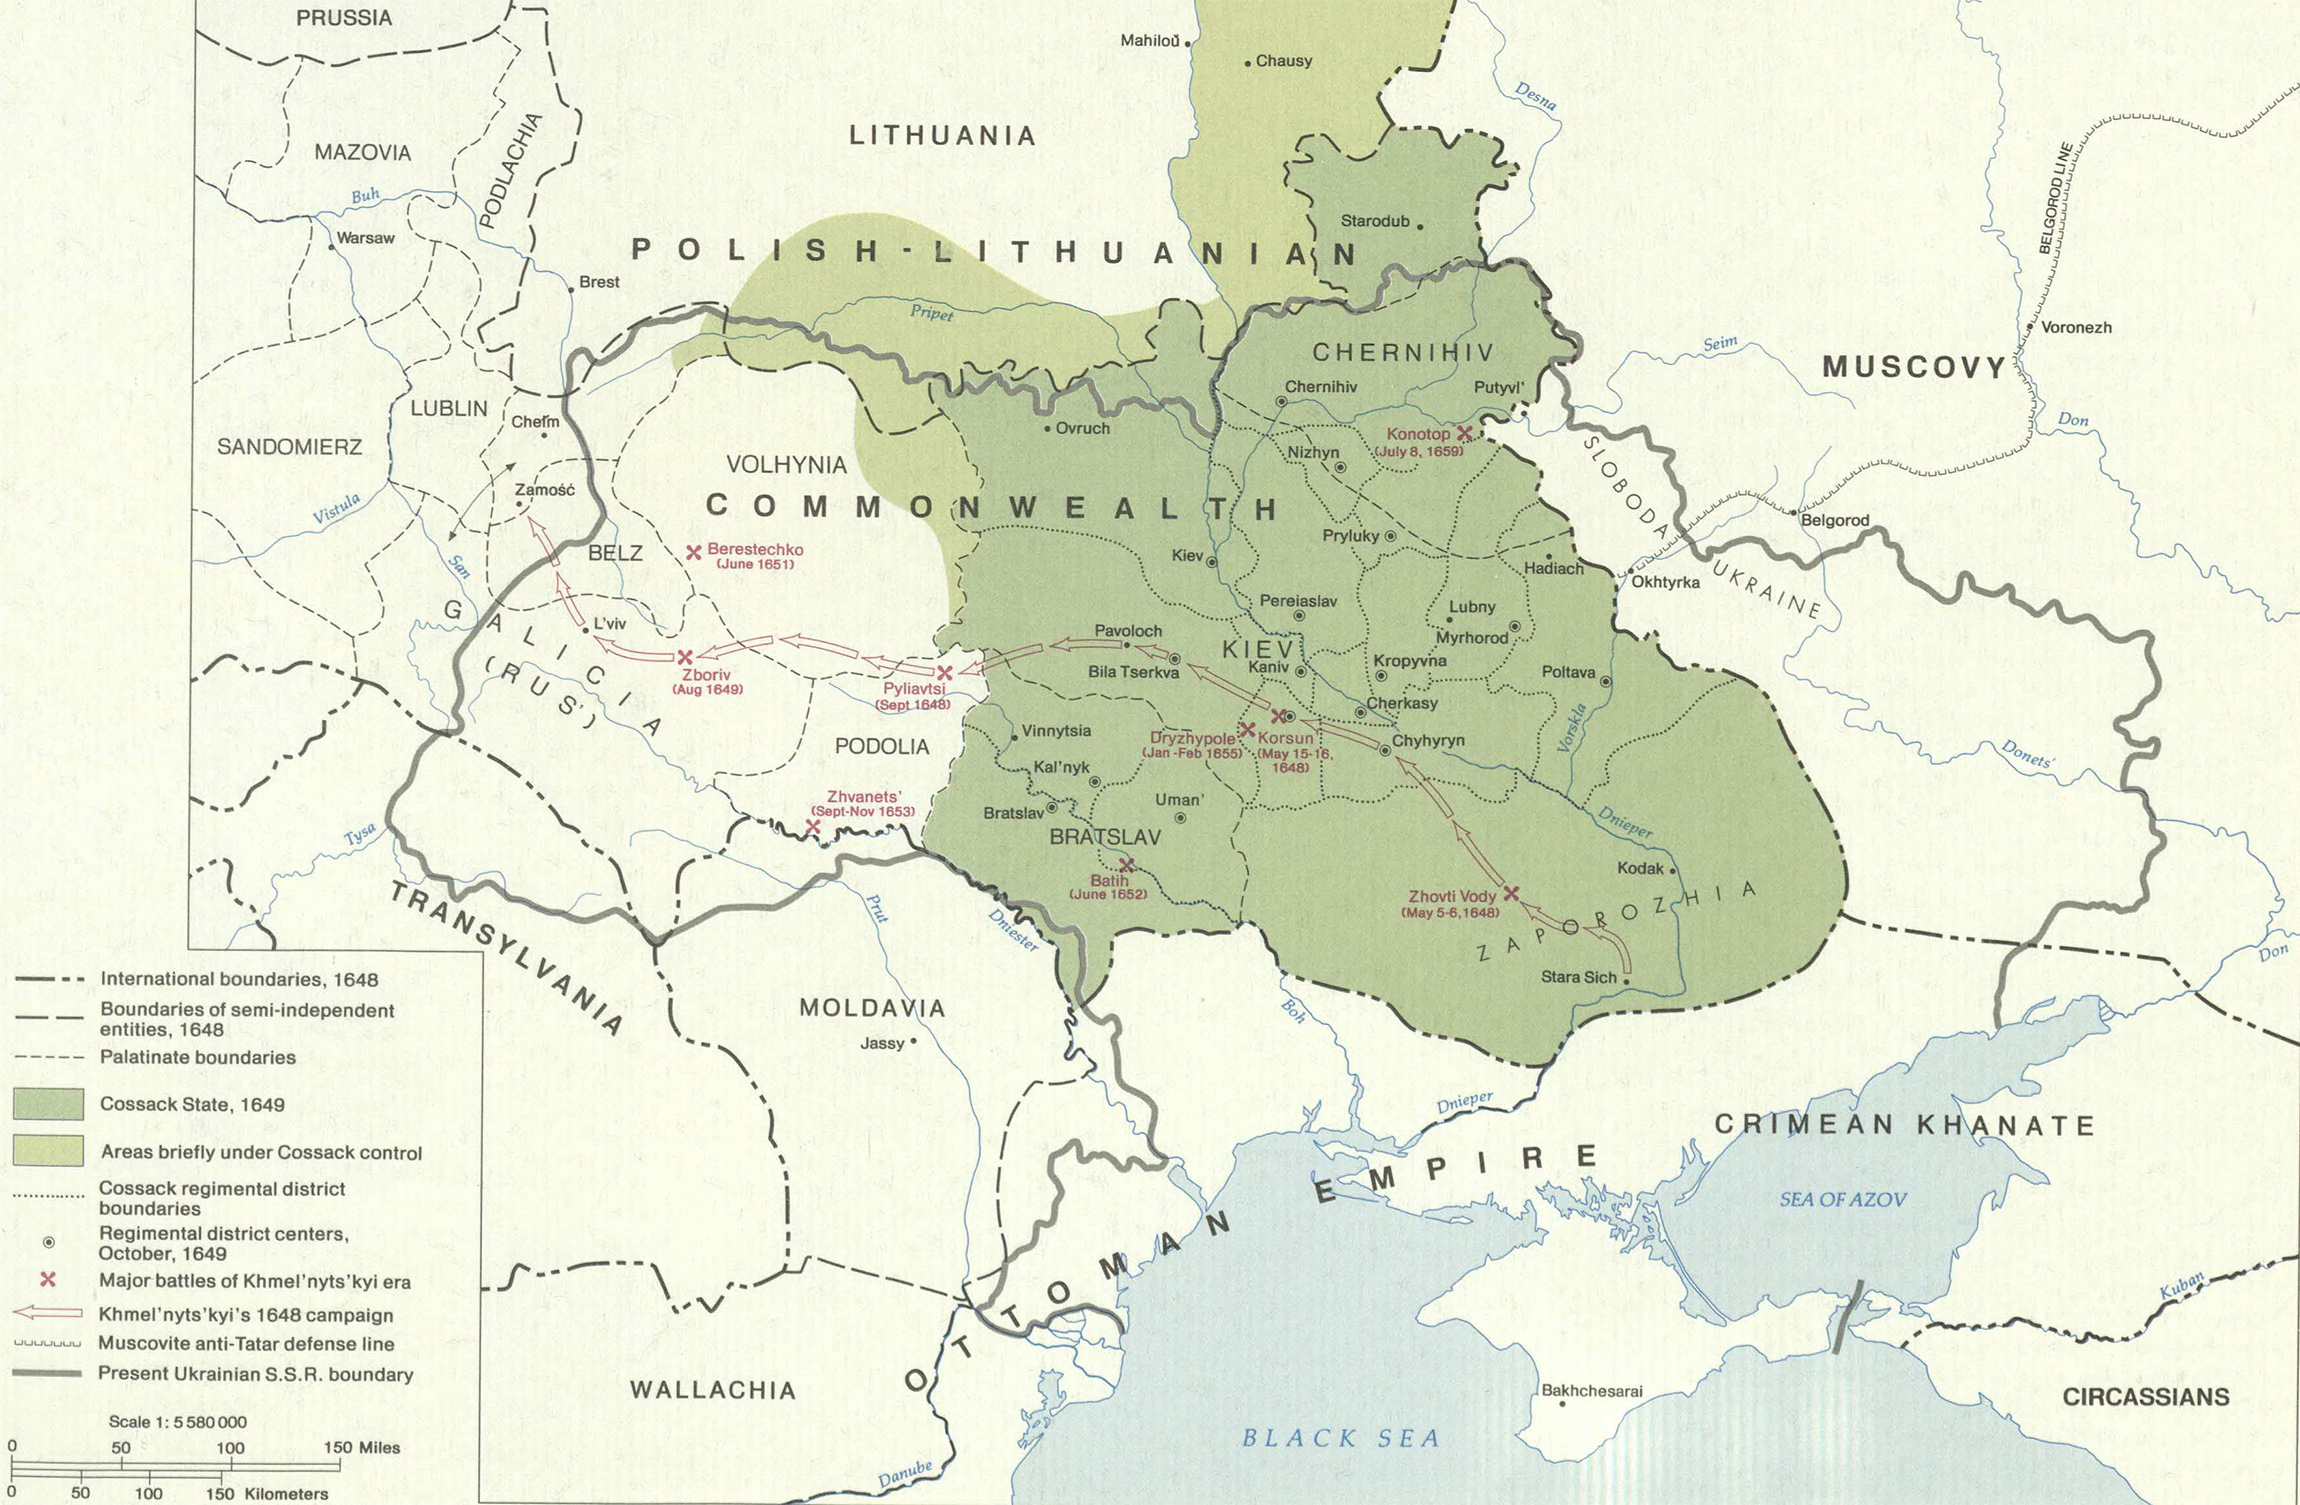 The cossack state after 1649